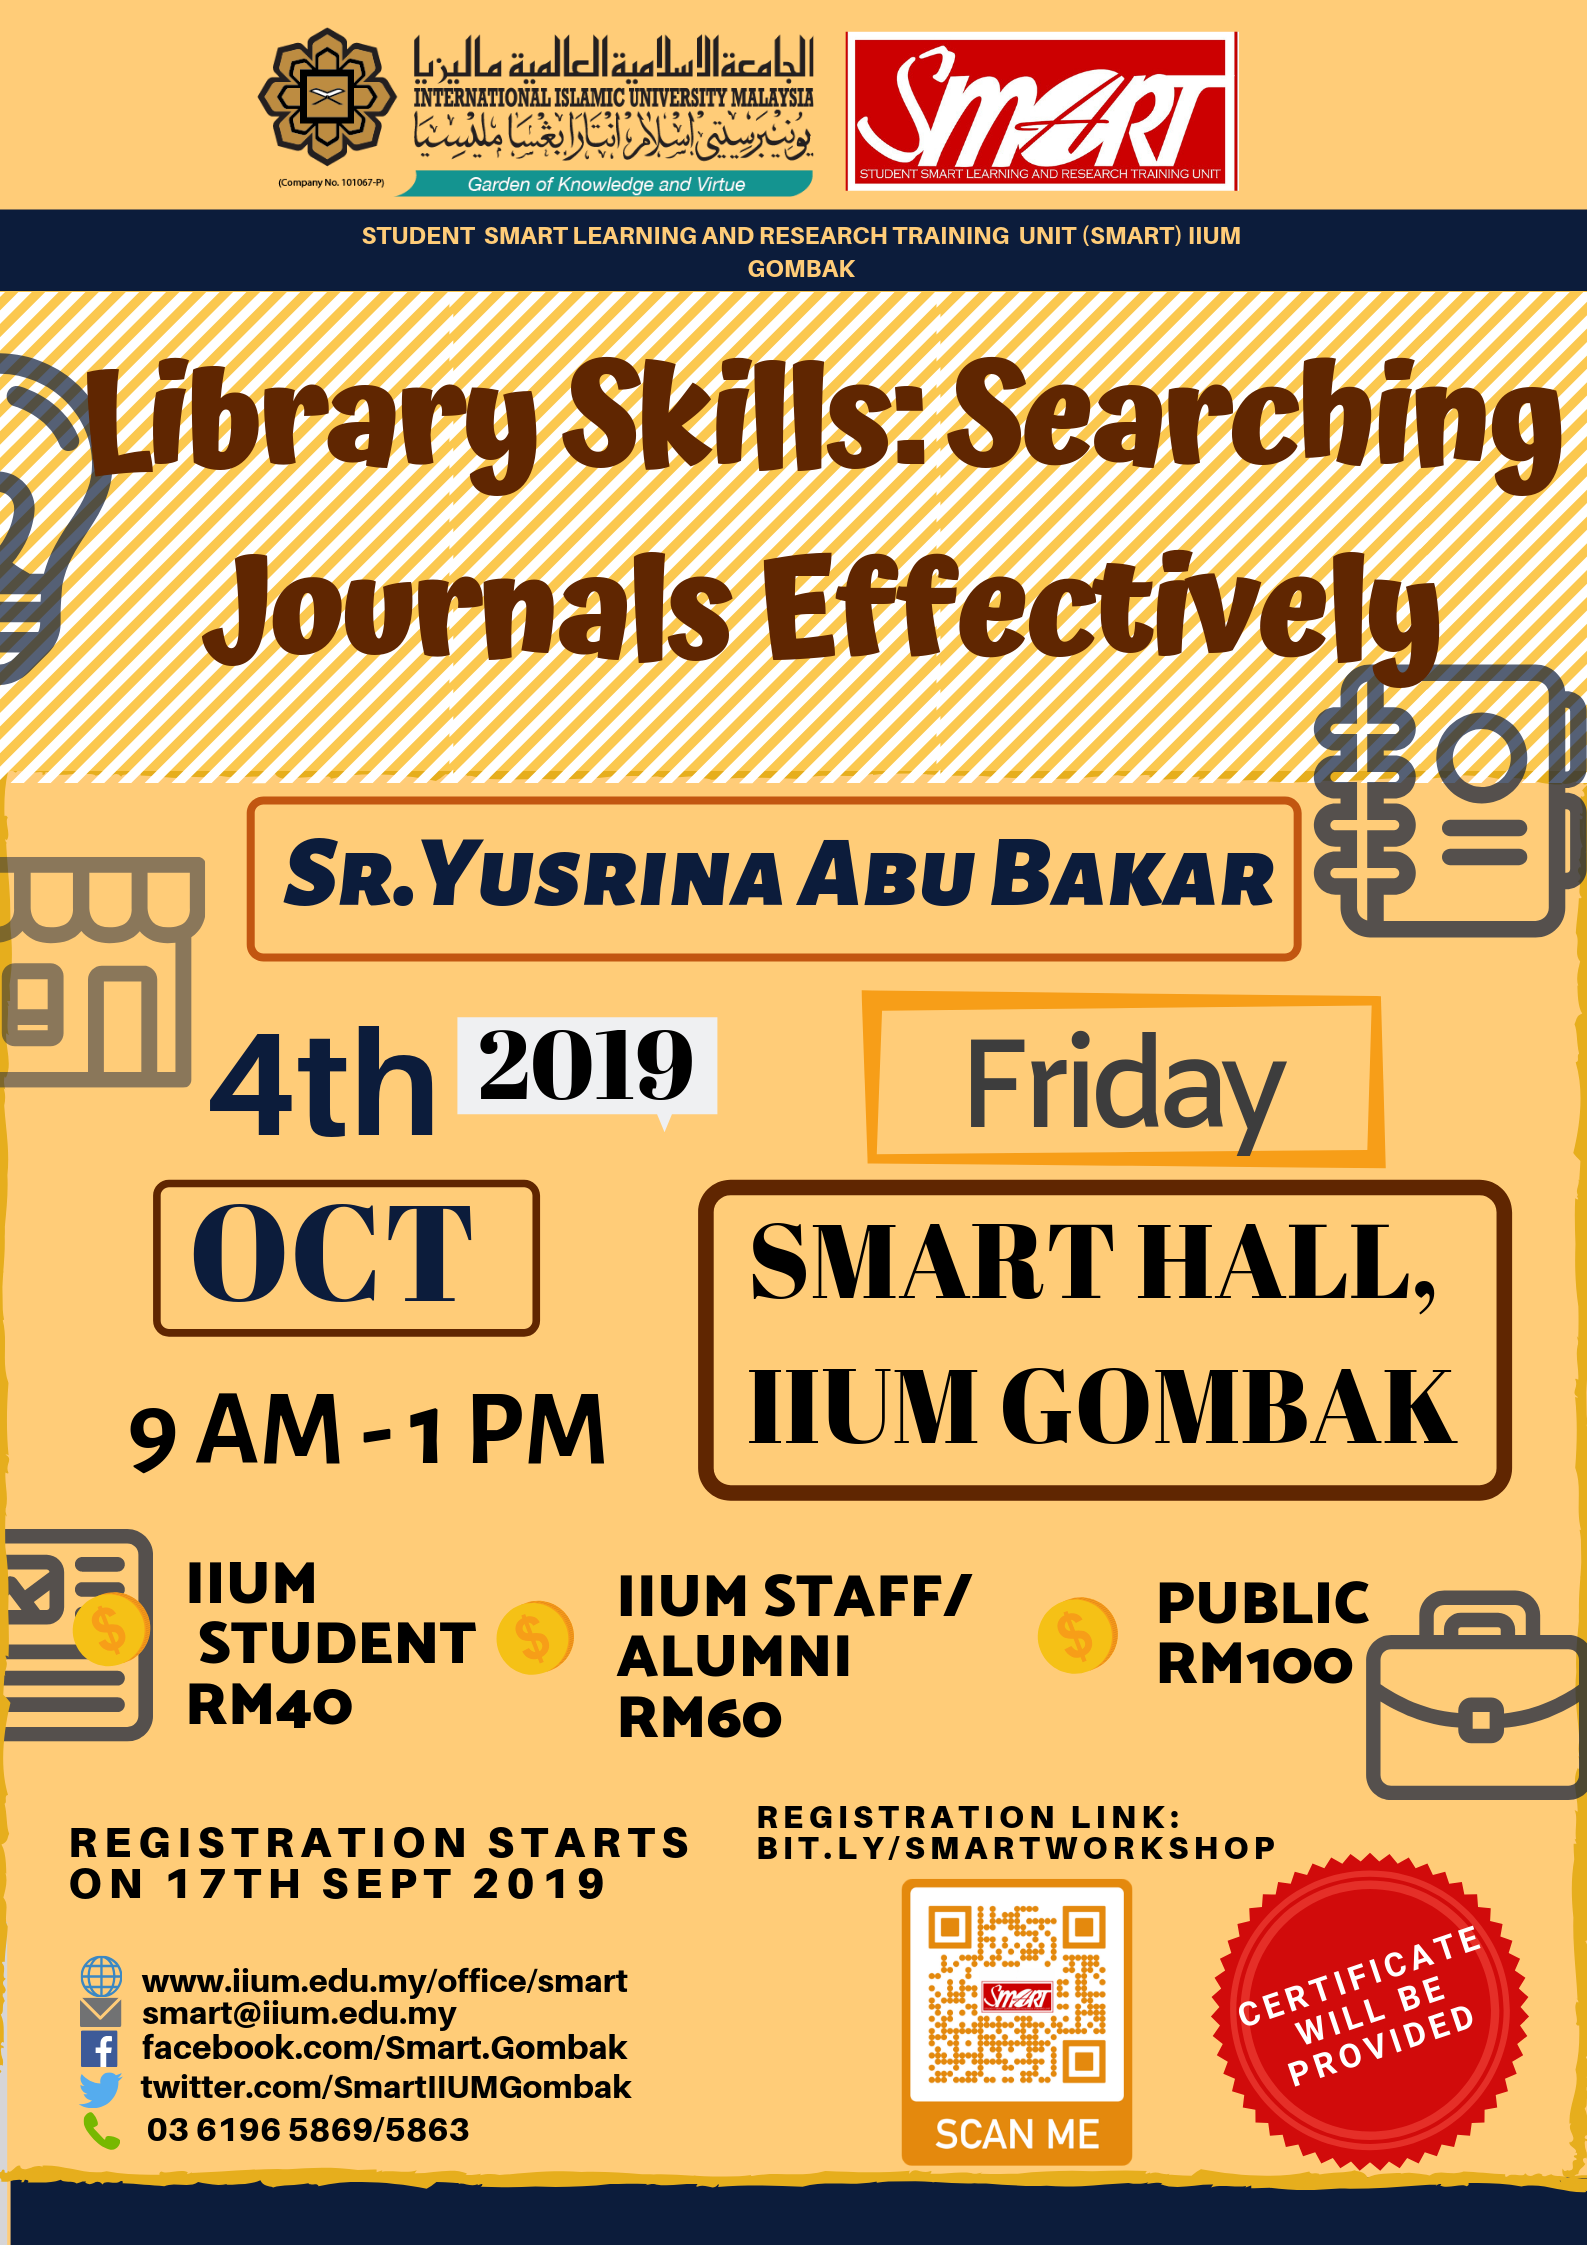 SEM 1, 19/20 - WORKSHOP - LIBRARY SKILLS : SEARCHING JOURNALS EFFECTIVELY